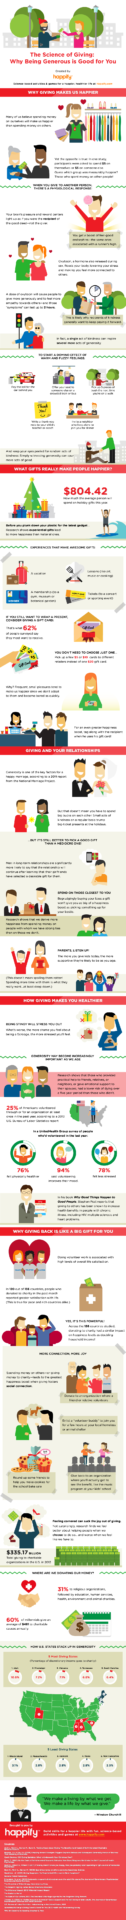 Giving-Happify-Infographic